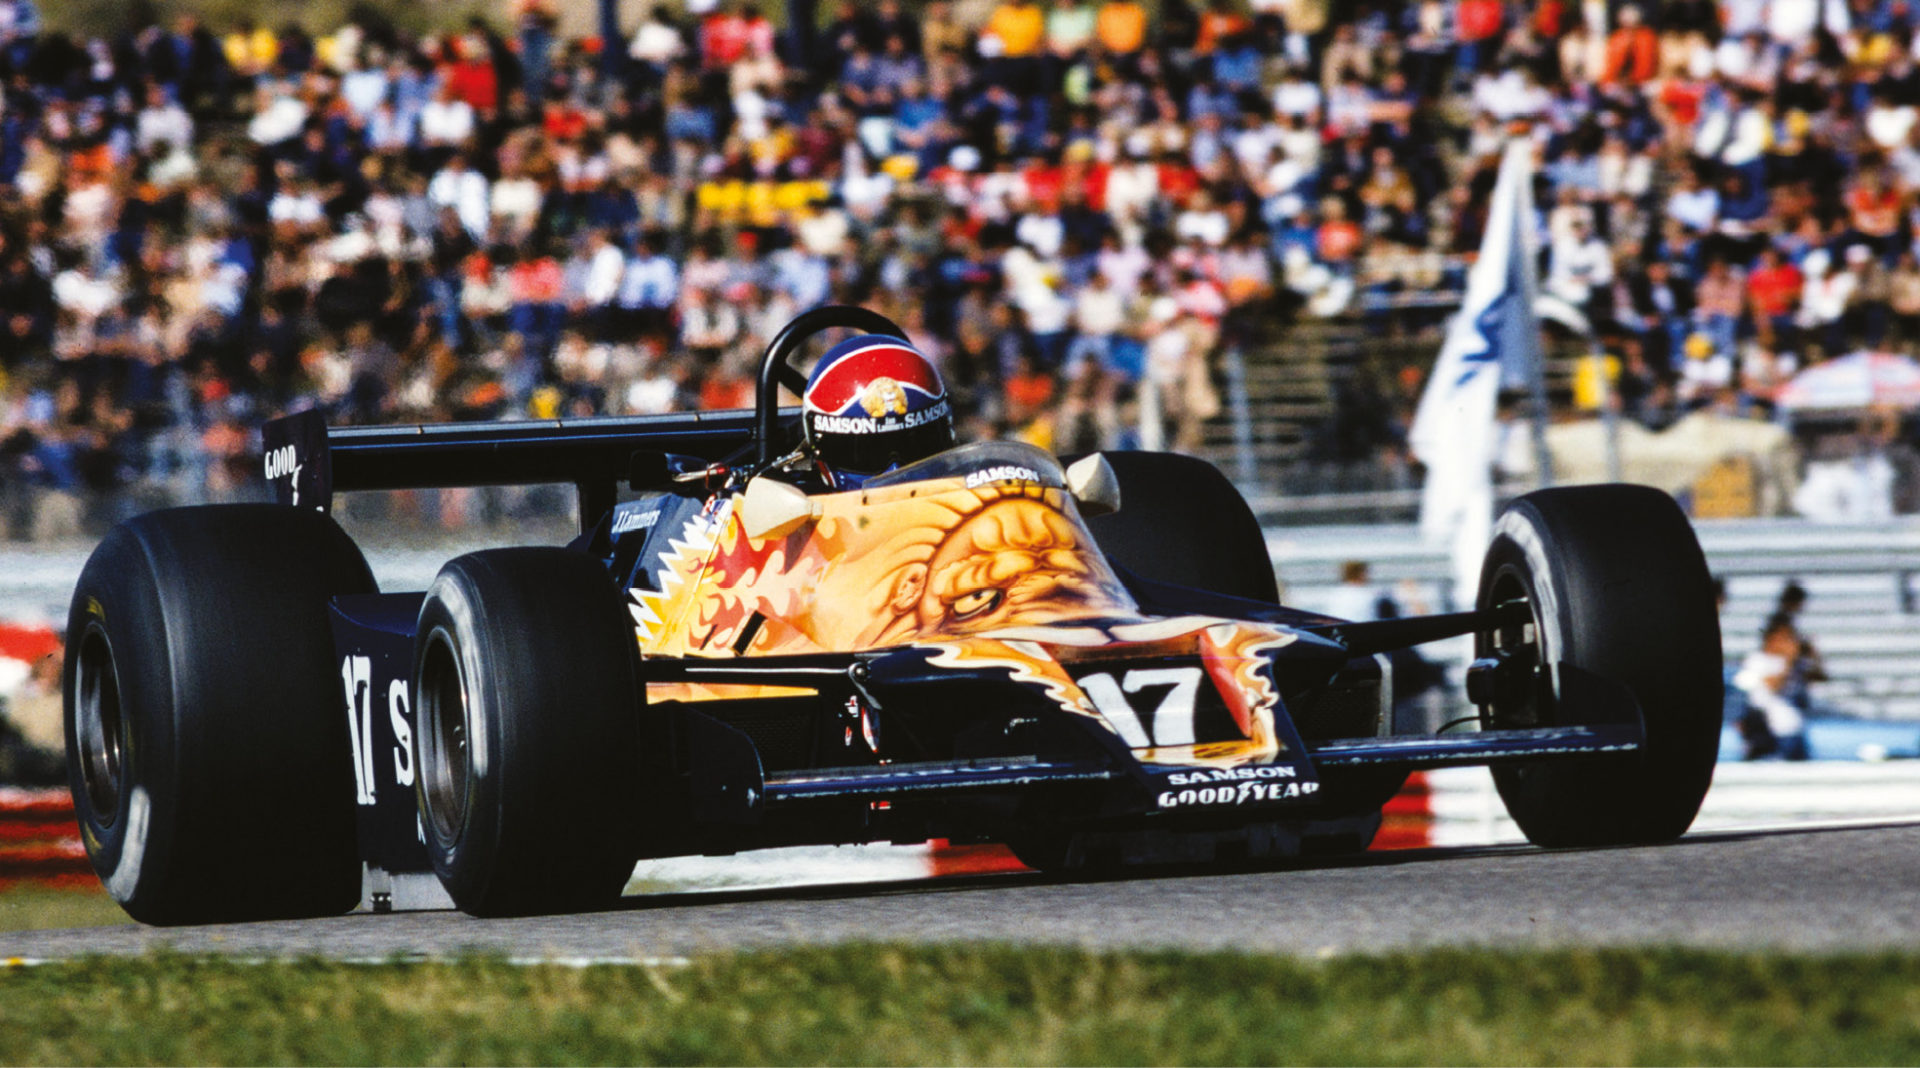 Dutchman Lammers made his F1 debut with Shadow and the wild-liveried DN9 in 1979